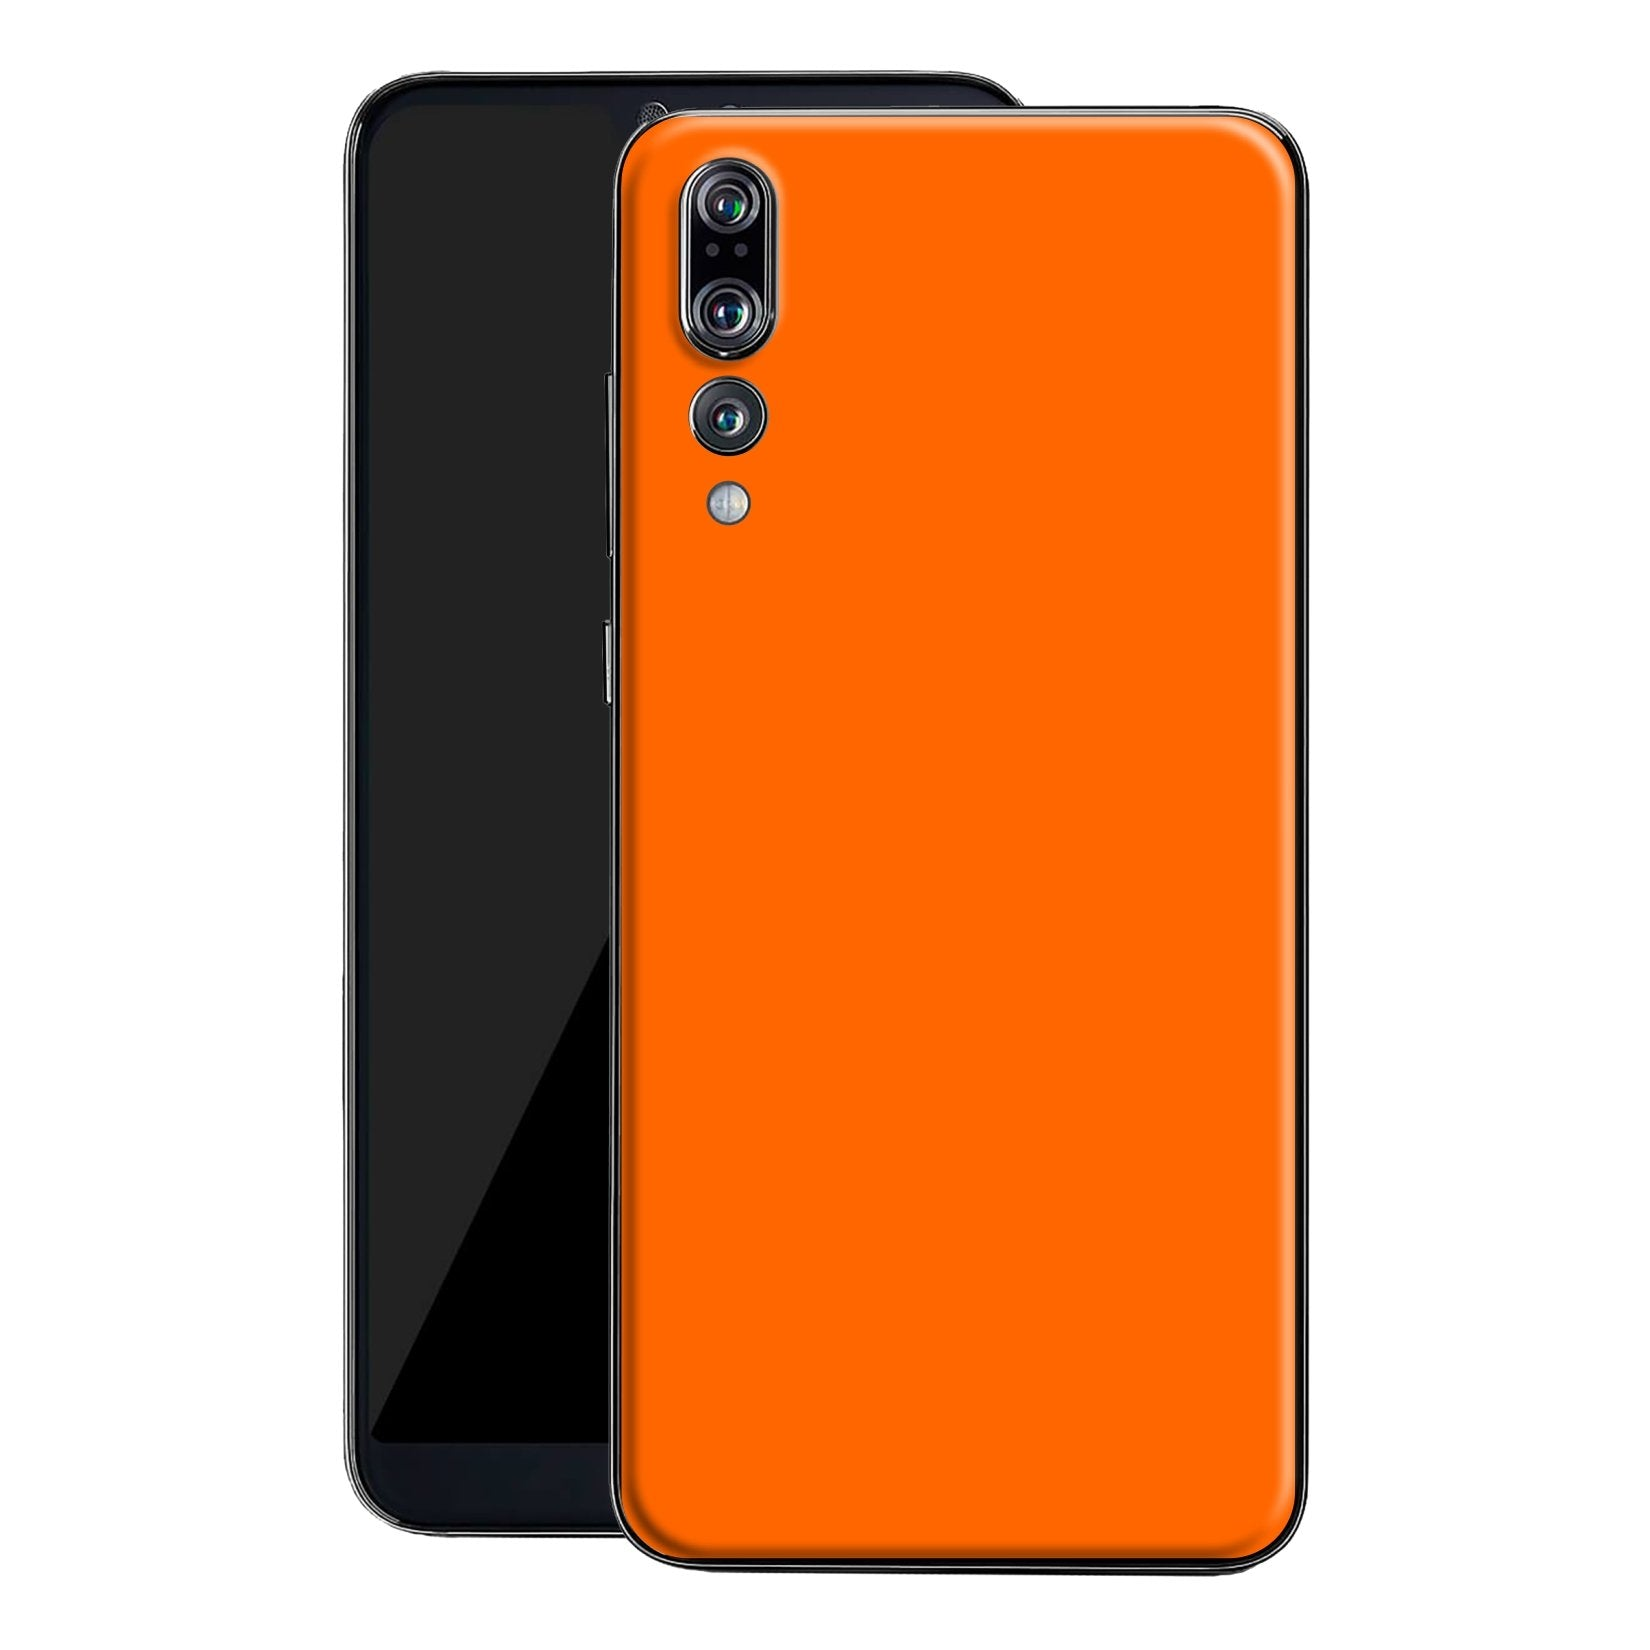 Huawei P20 PRO Orange Glossy Gloss Finish Skin, Decal, Wrap, Protector, Cover by EasySkinz | EasySkinz.com